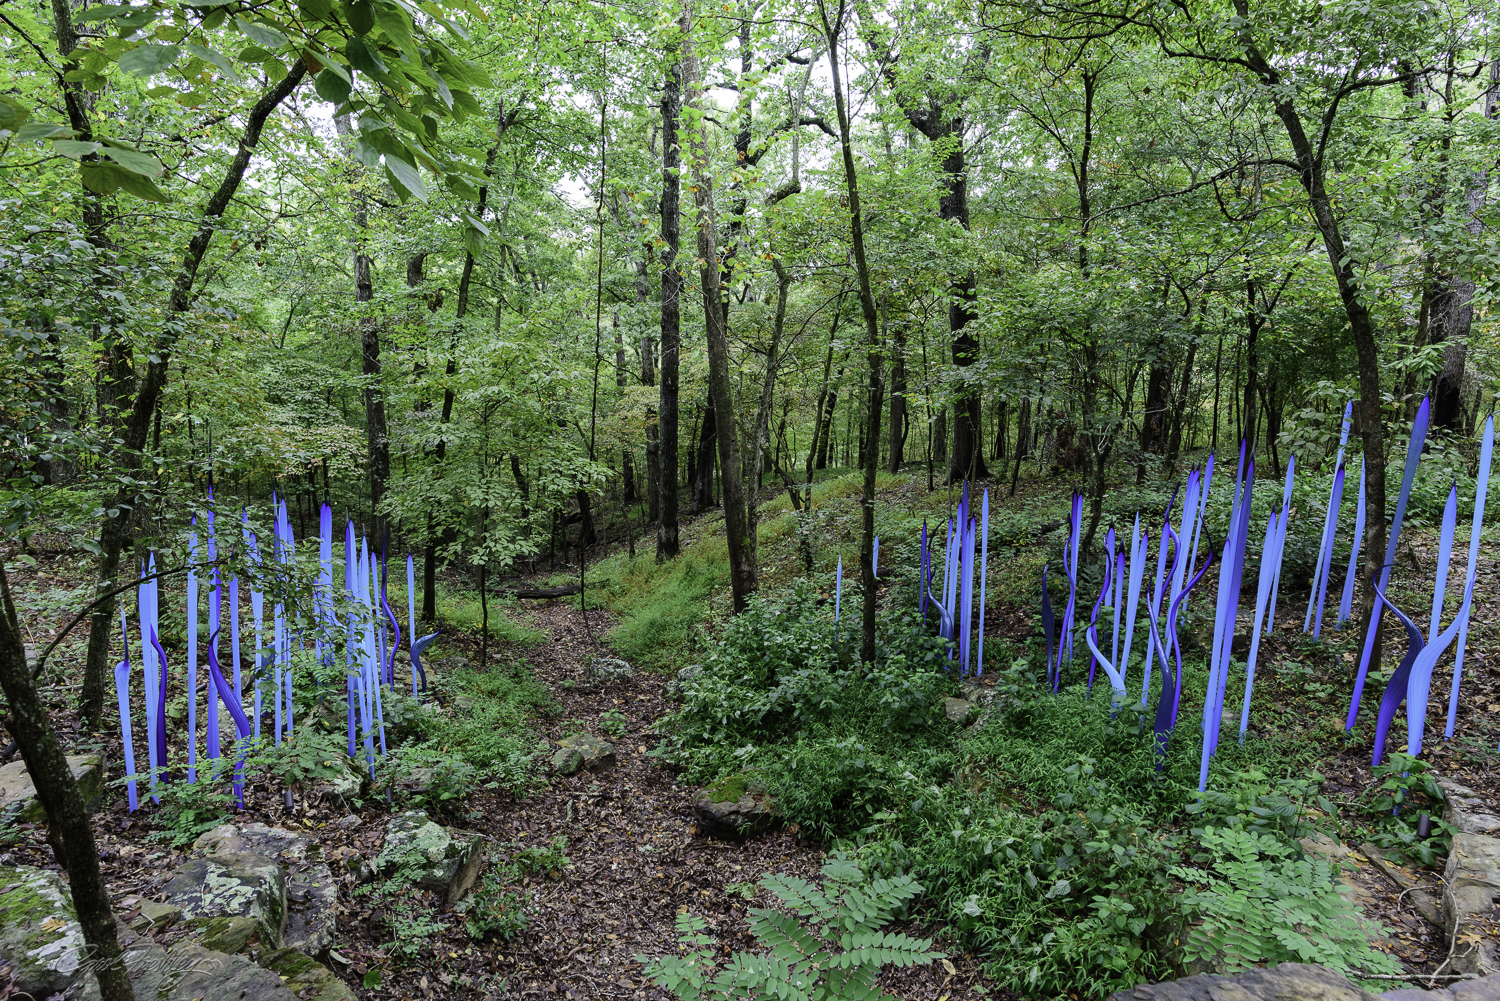 Chihuly in the Forest-13-9.jpg